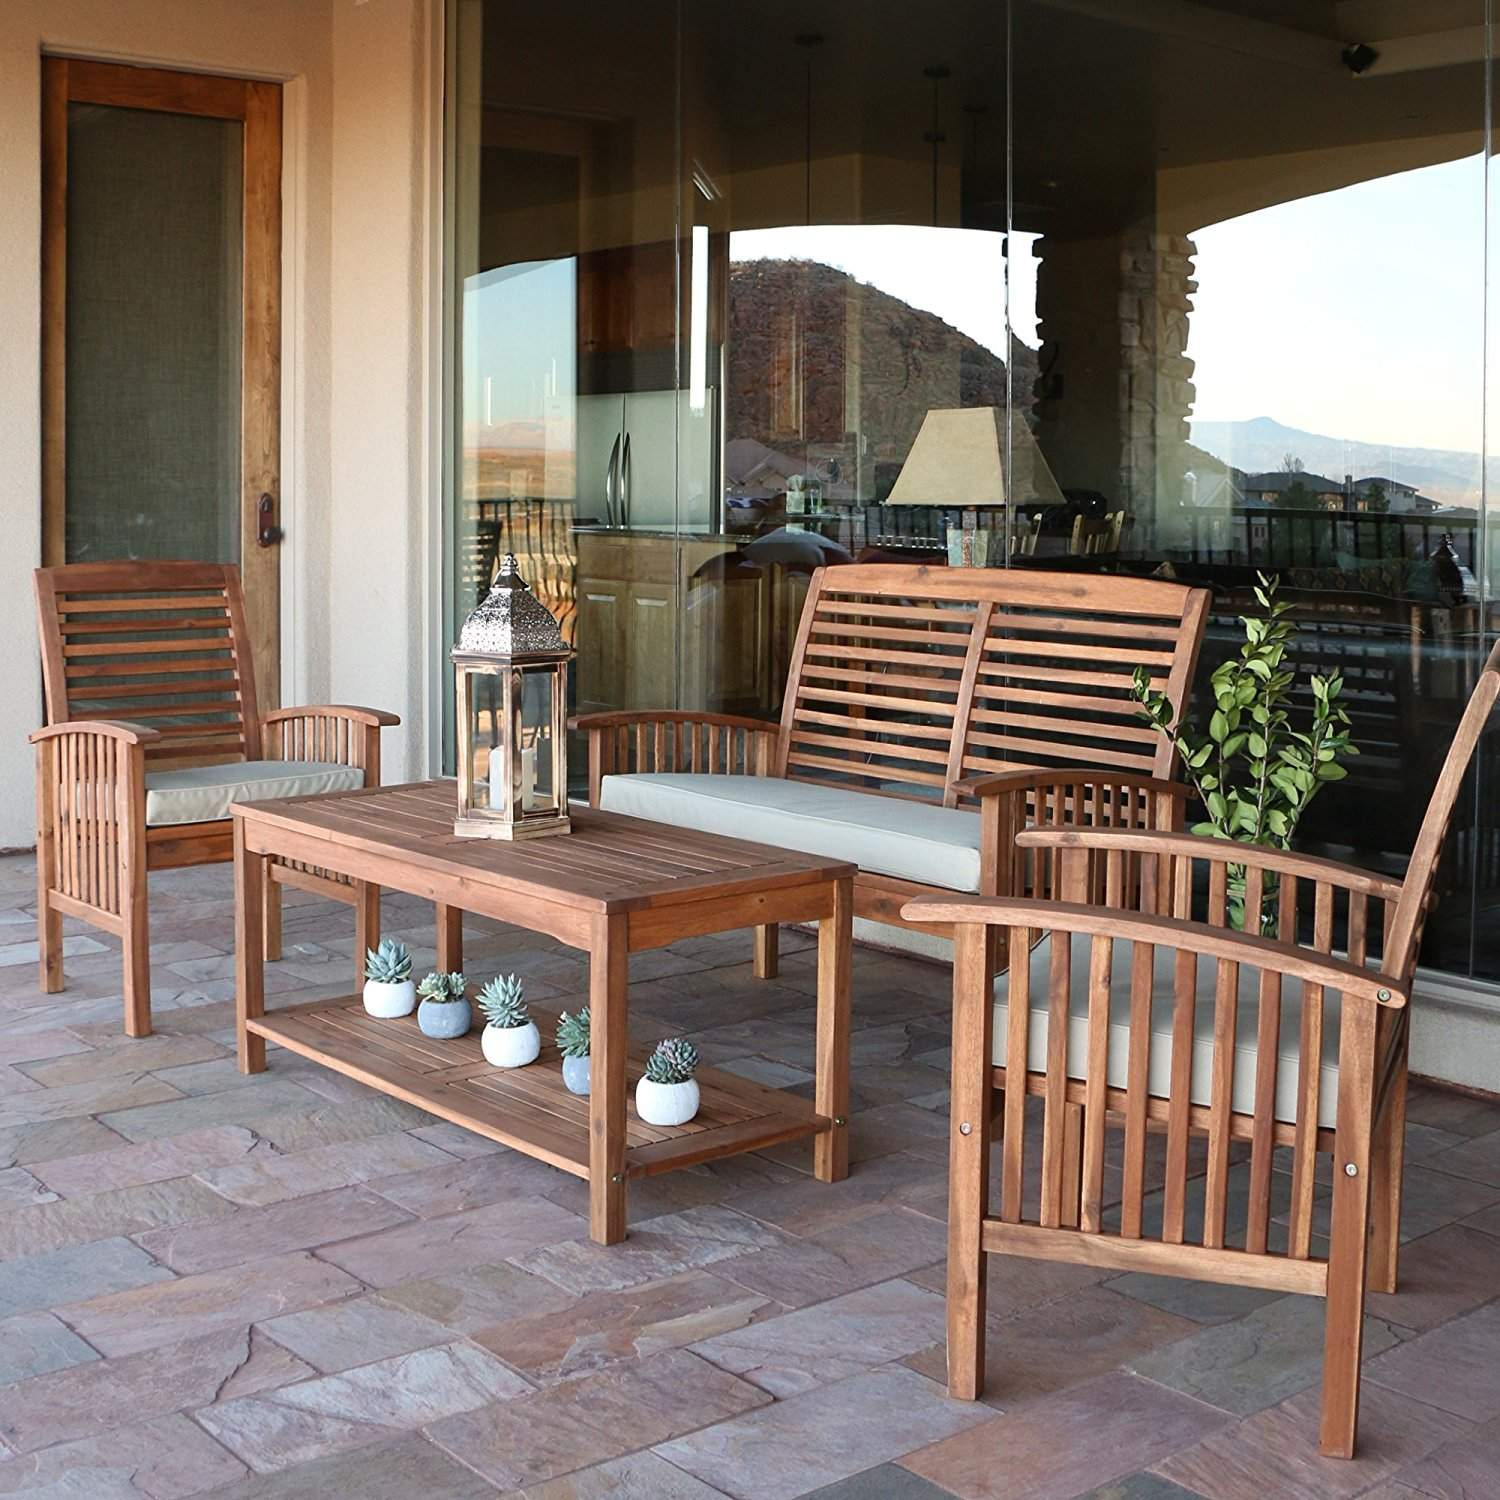 Best ideas about Wooden Patio Furniture . Save or Pin Top 10 Best Garden Furniture Sets 2018 Now.